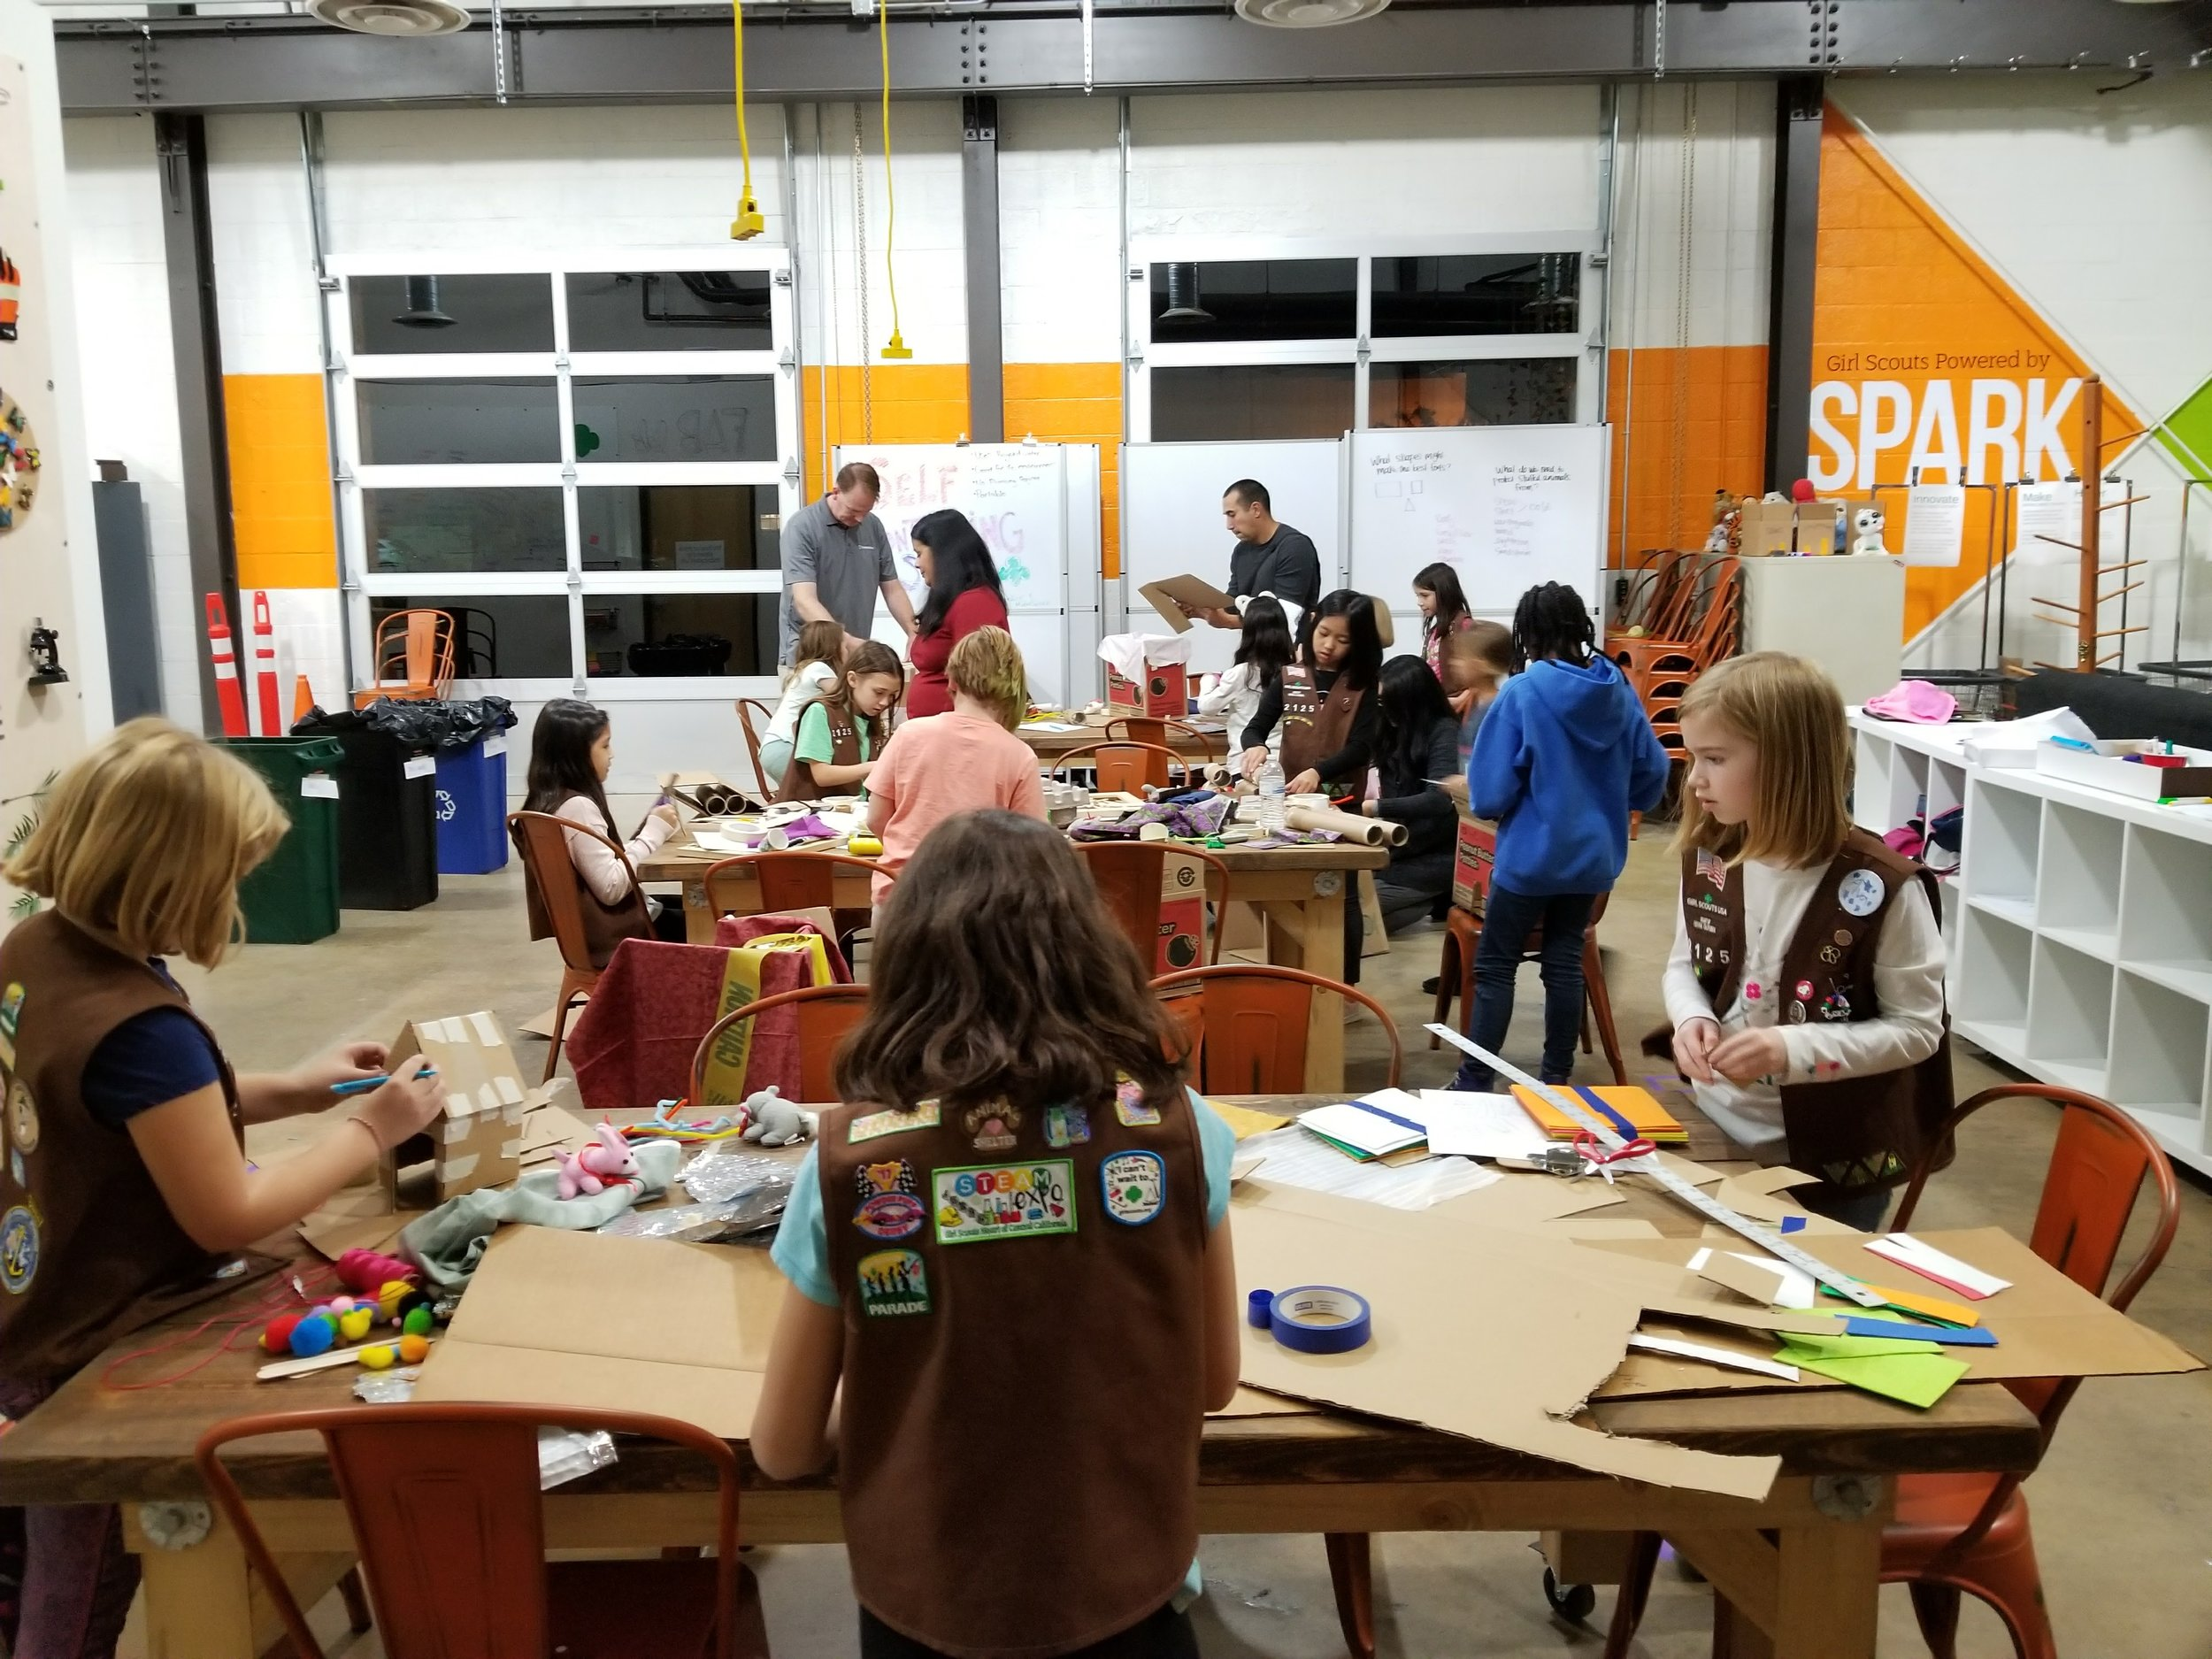 Organized chaos at Design-A-Fort